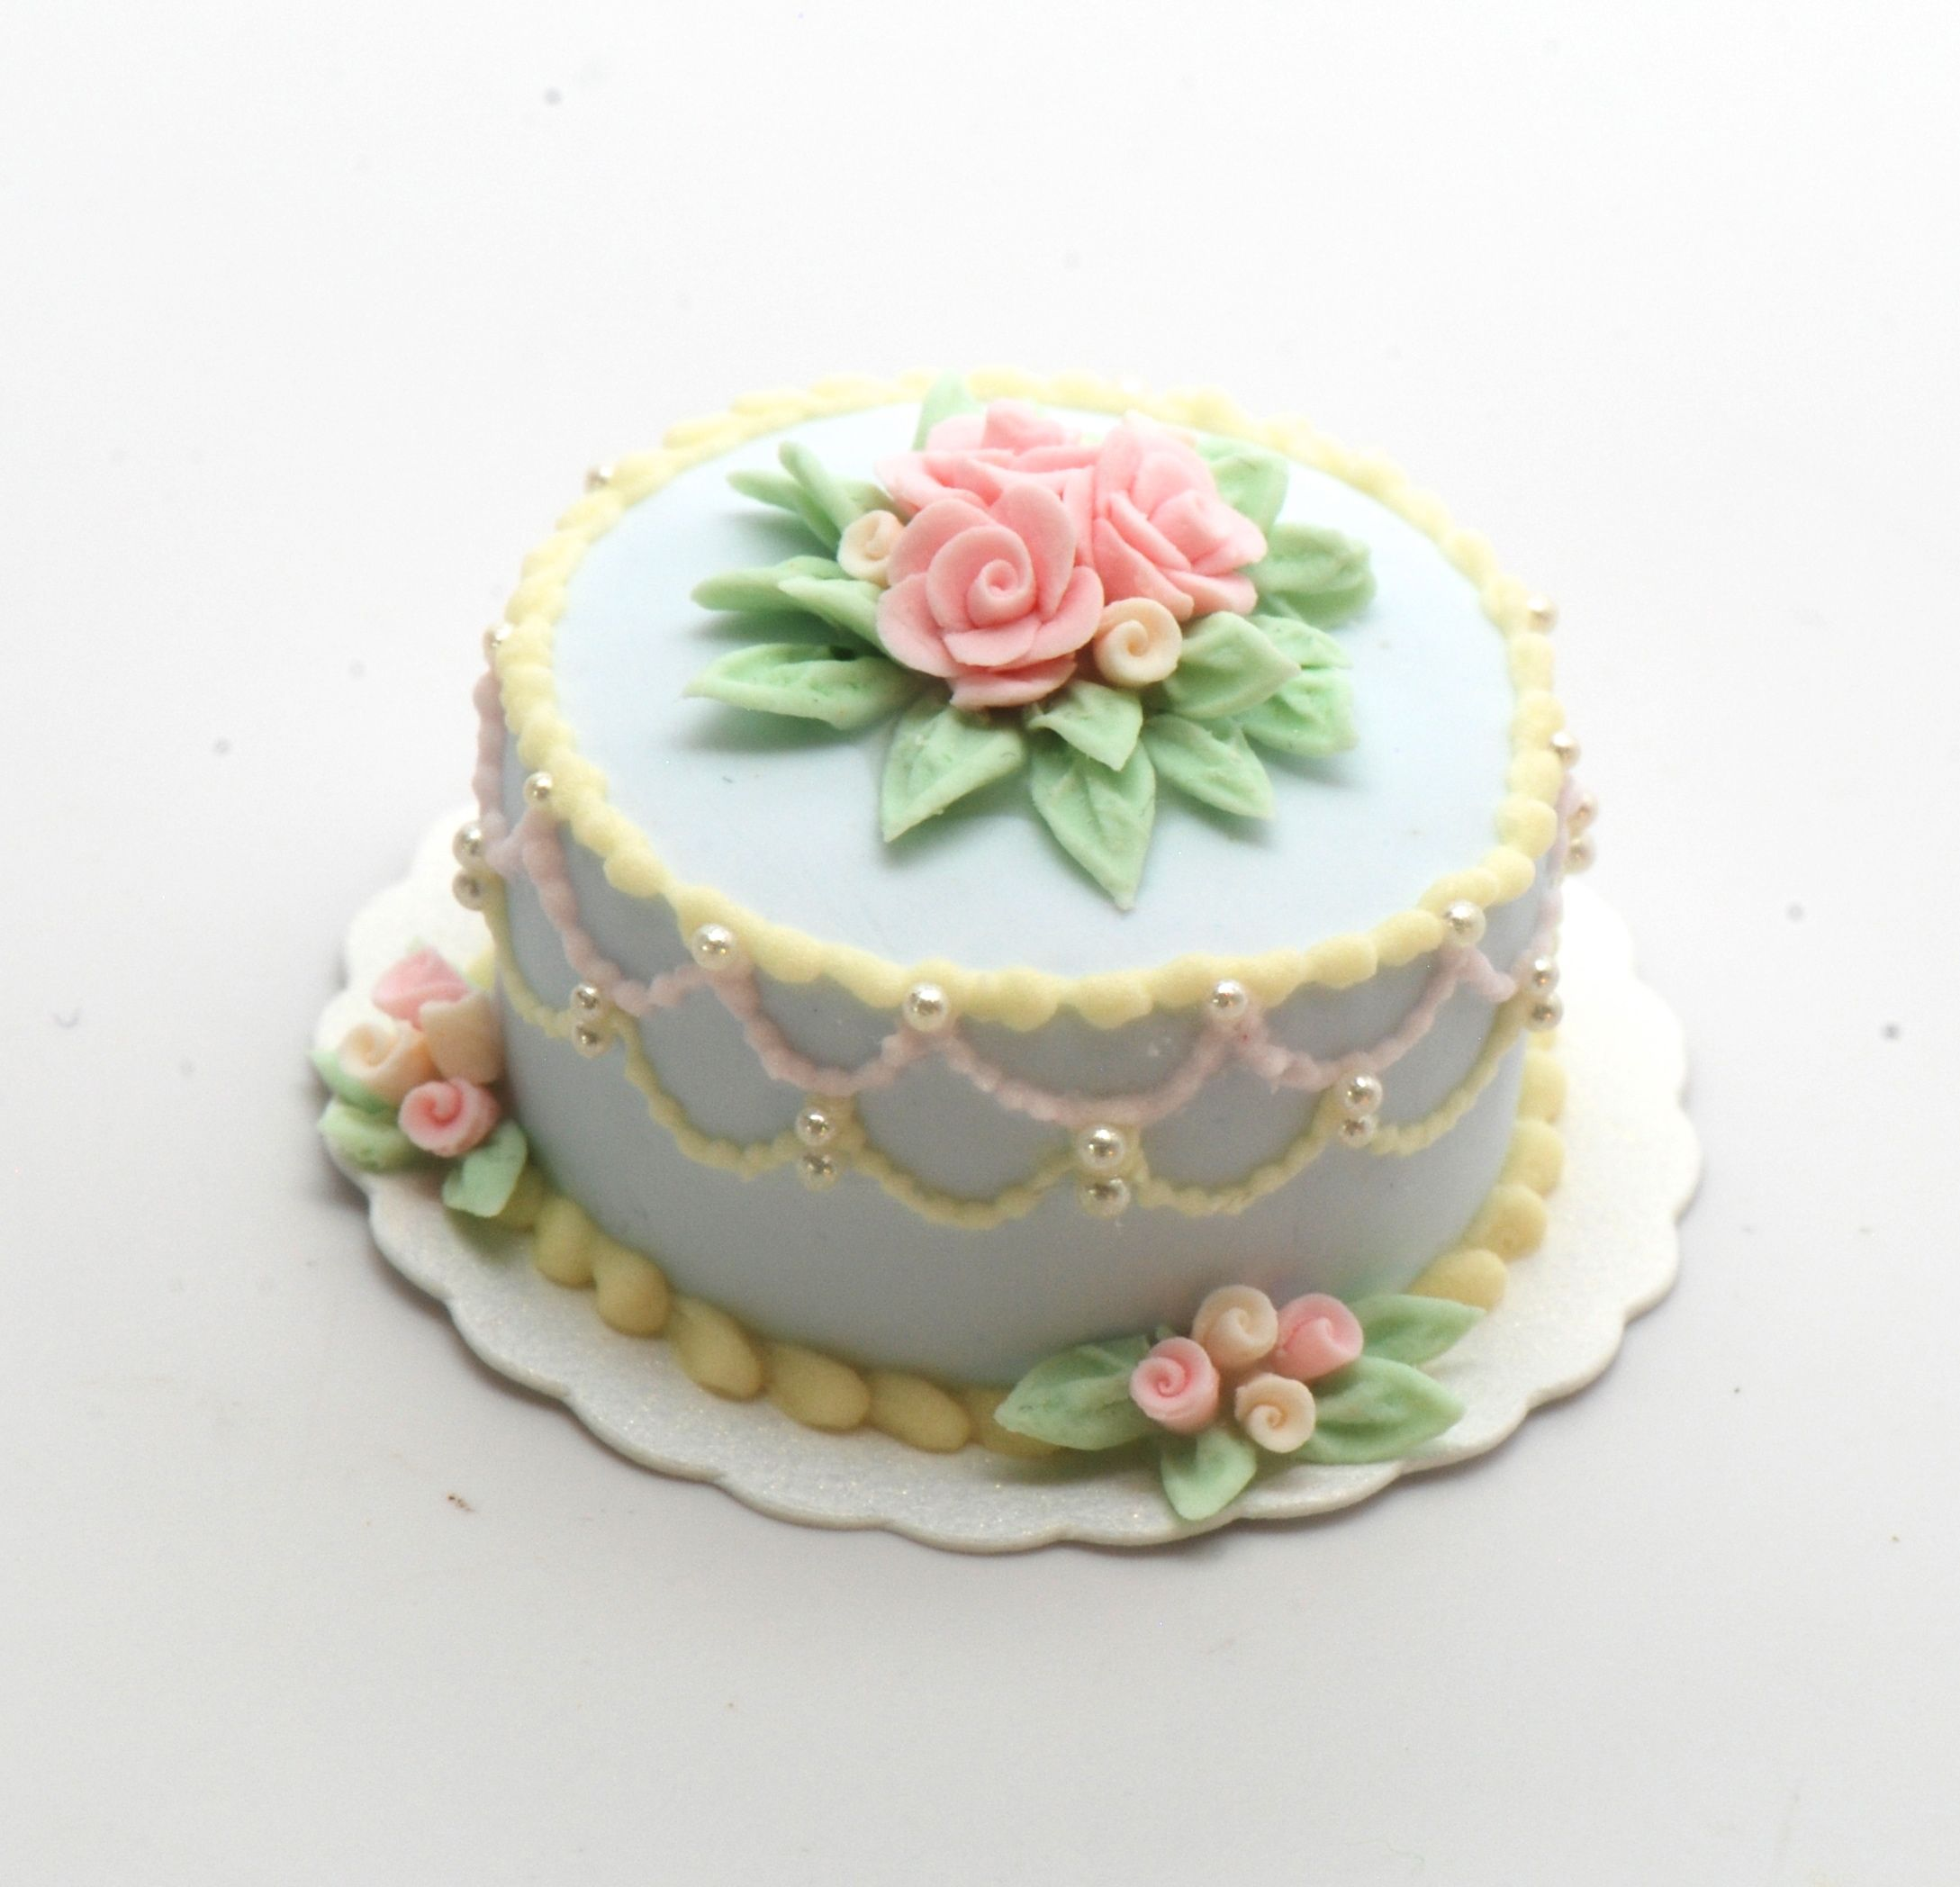 Pastel Lace Rope Cake | Stewart Dollhouse Creations